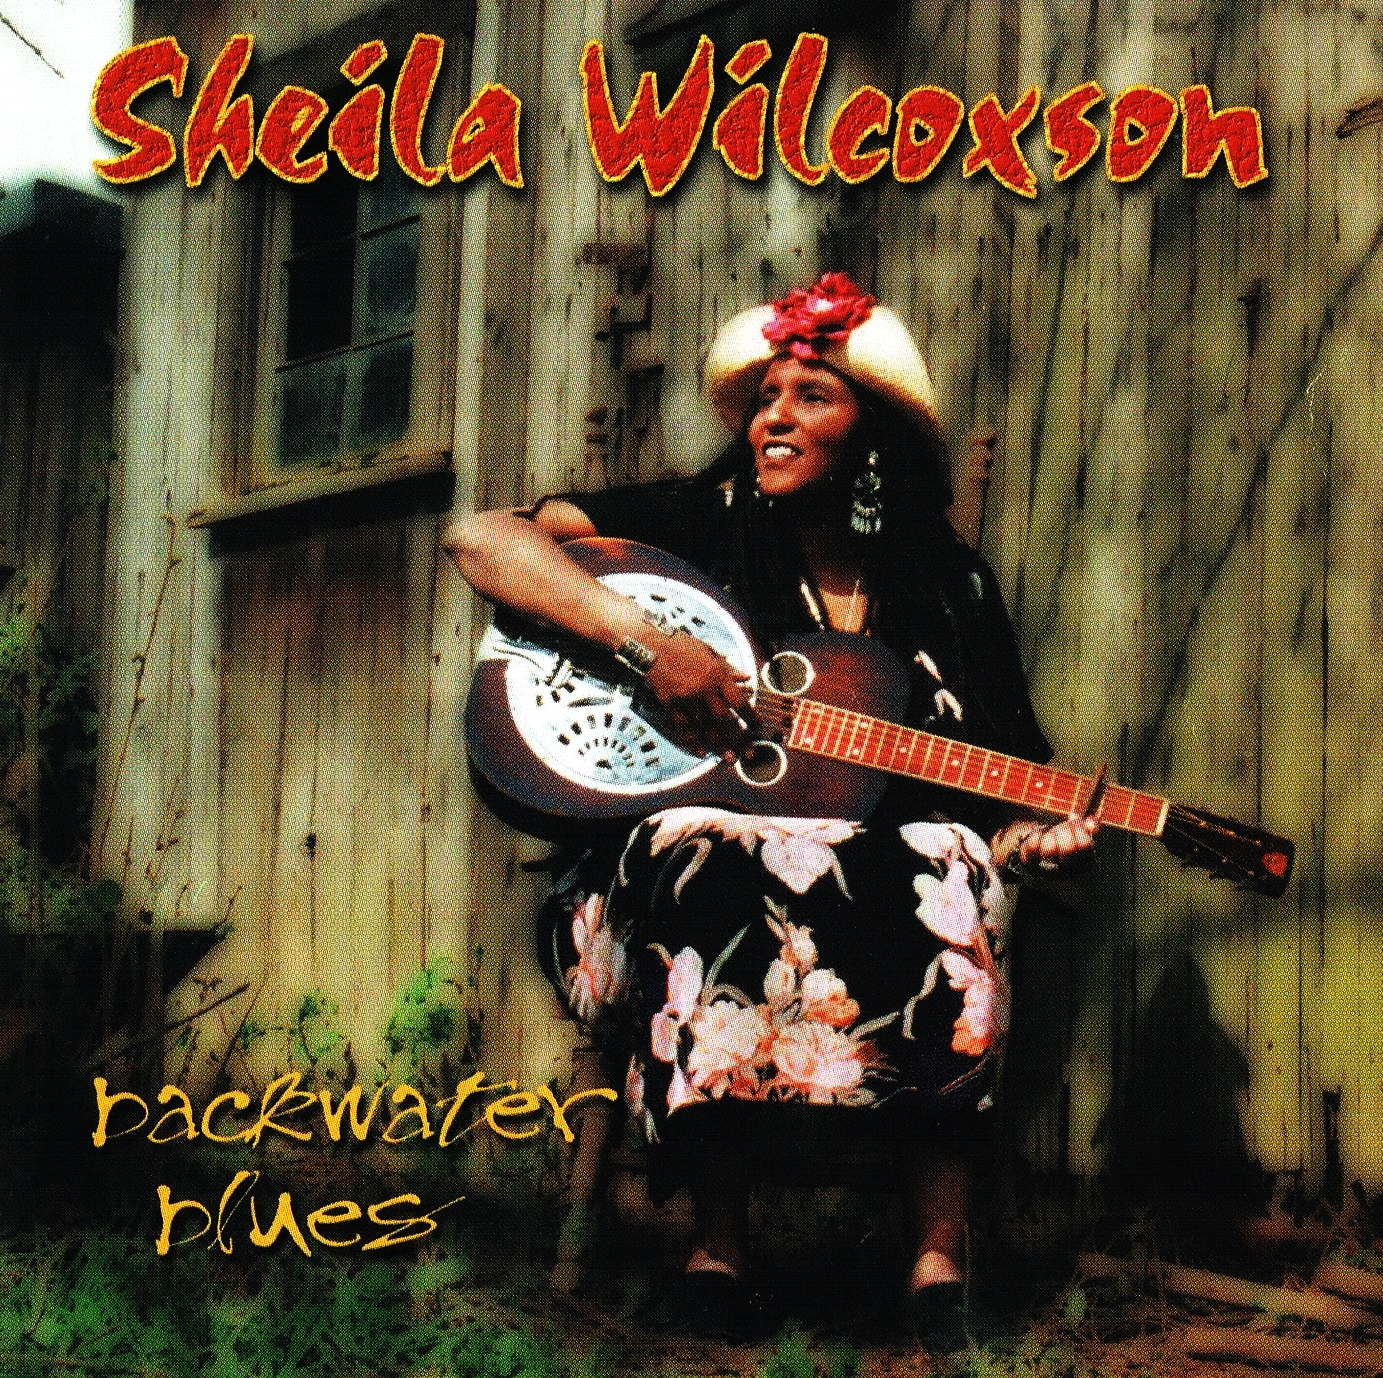 Sheila Wilcoxson, Backwater Blues